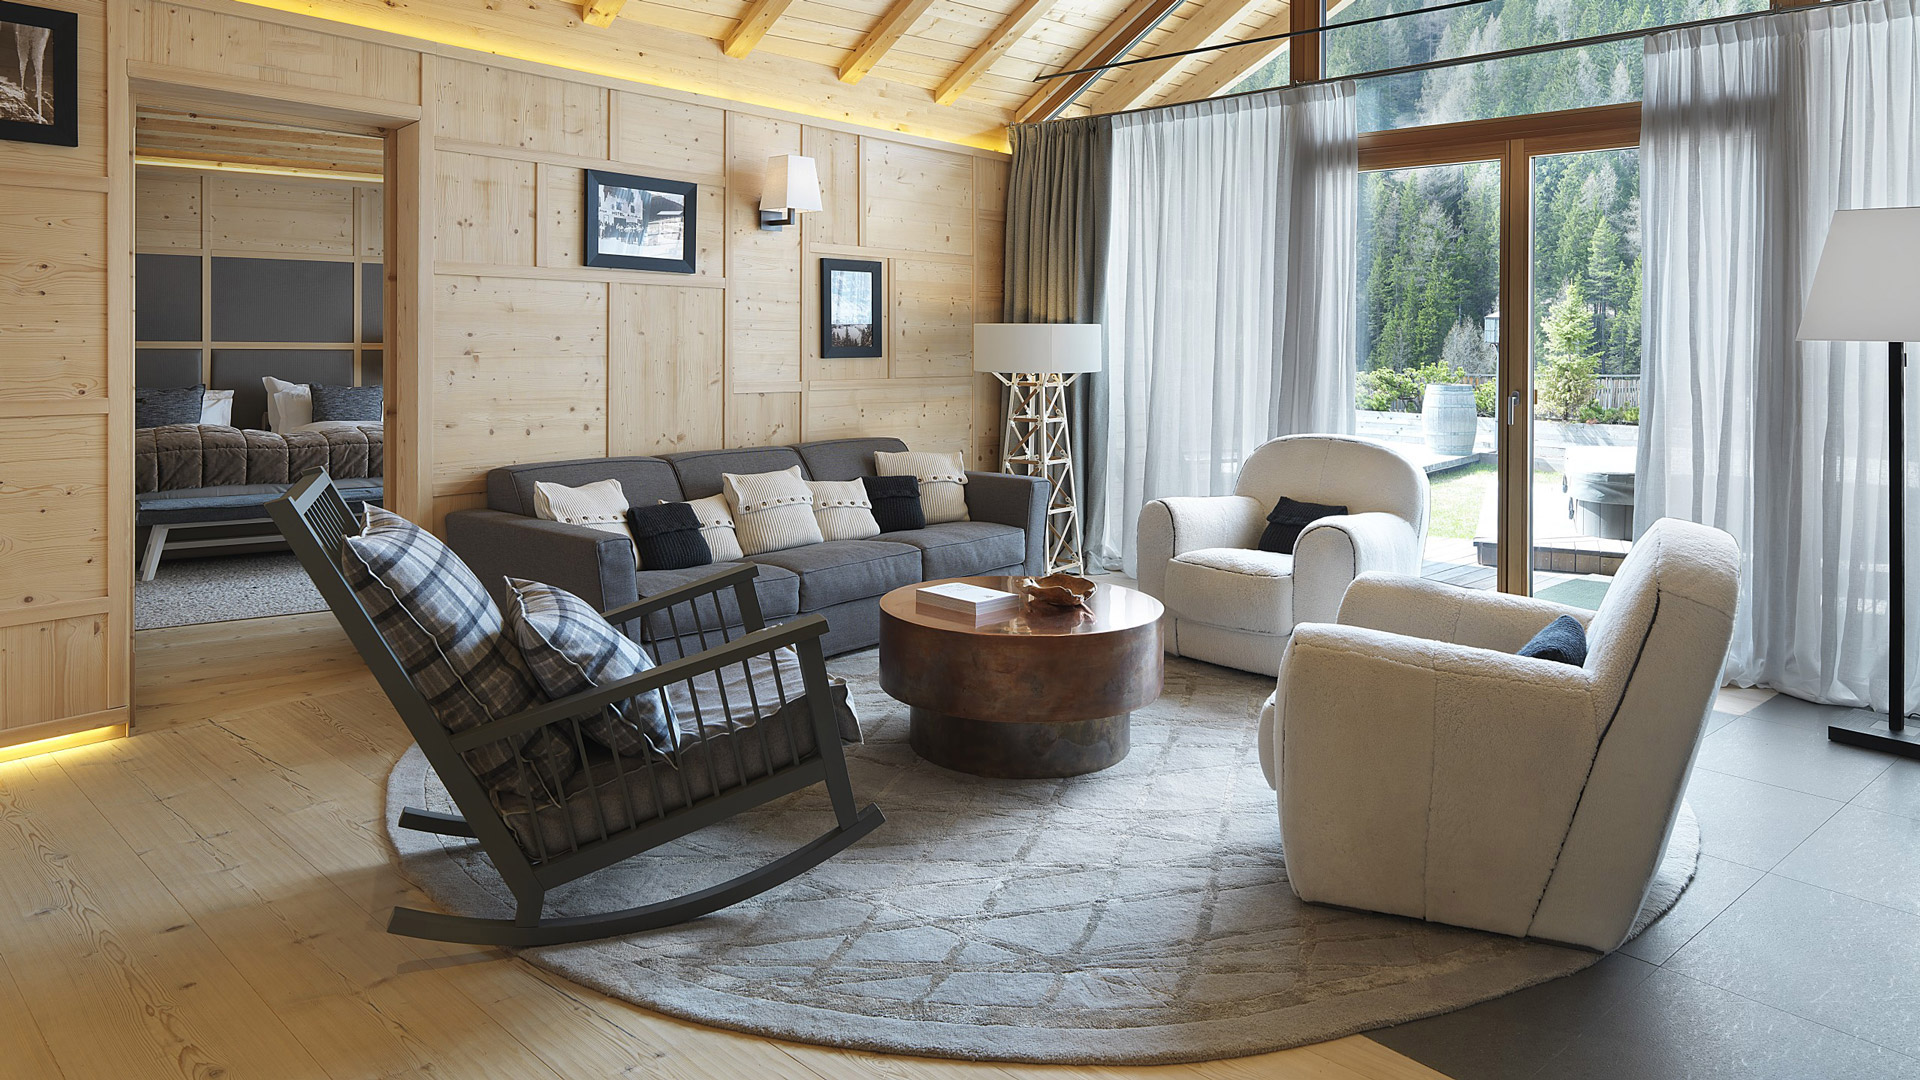 Chalet in montagna dal sapore scandinavo